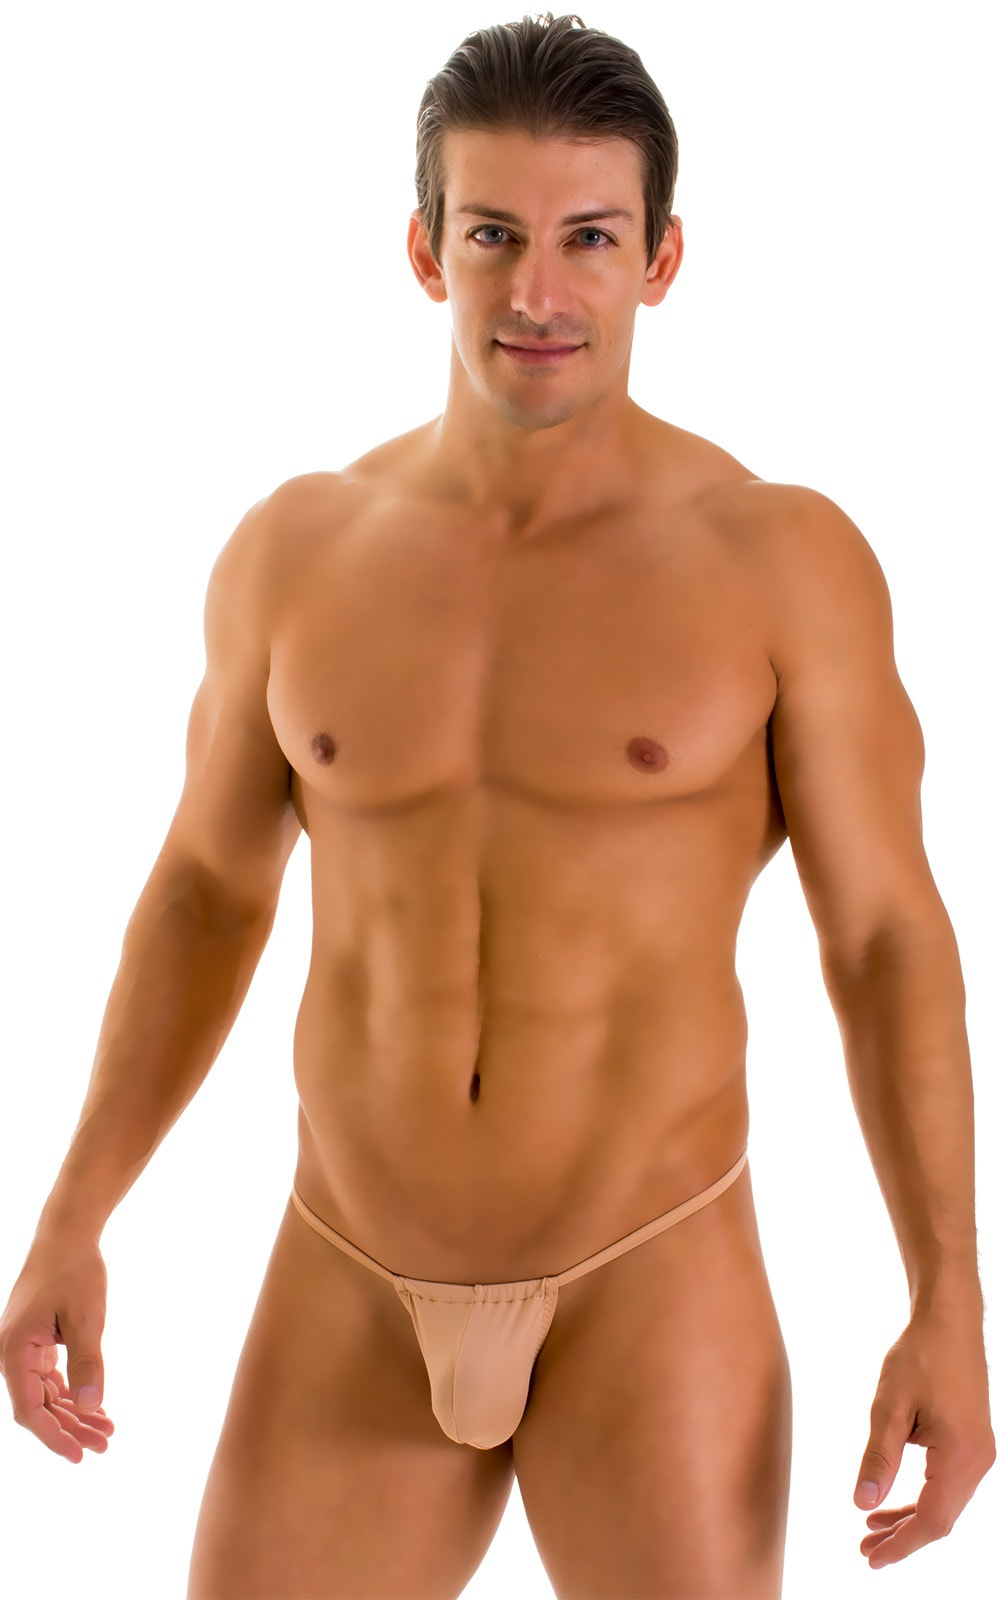 G String Swimsuit - Adjustable Pouch in Super ThinSKINZ Nude  3